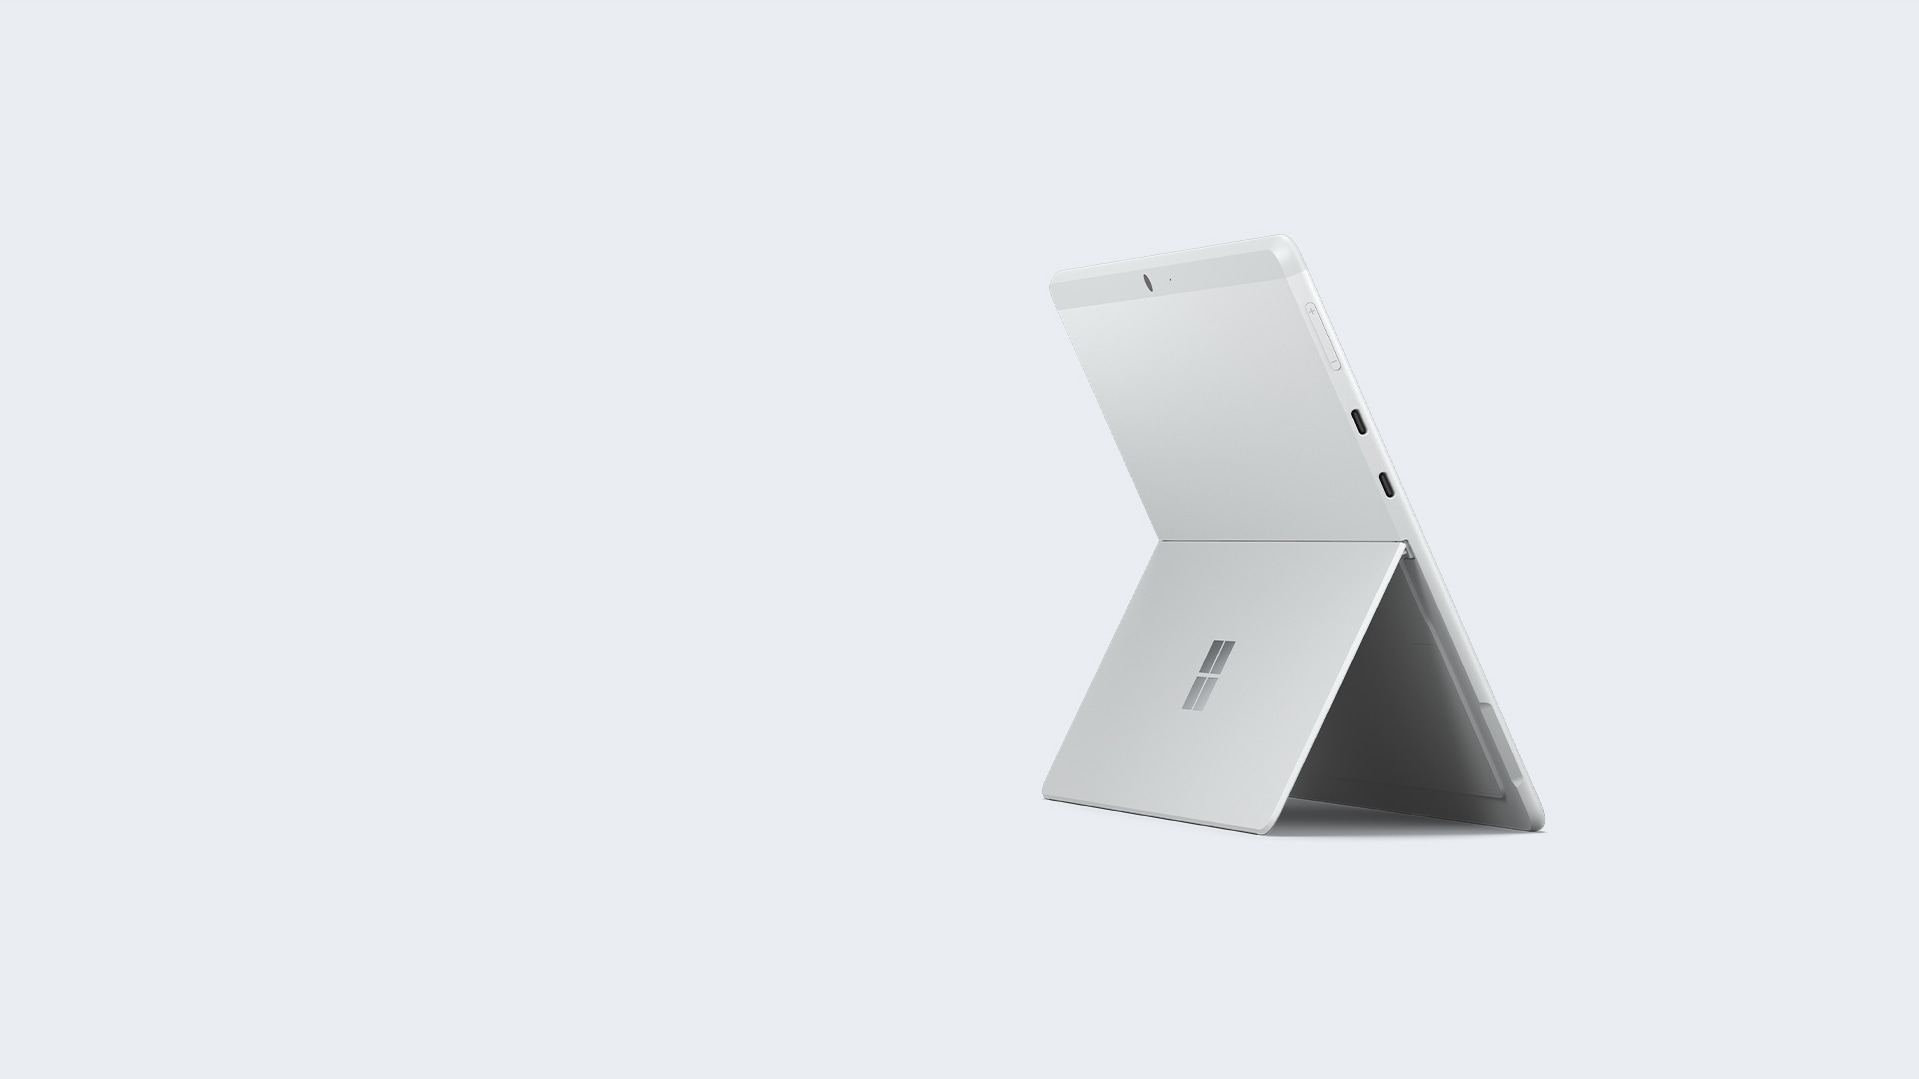 A Surface Pro X rests upon a stand against a platinum background.